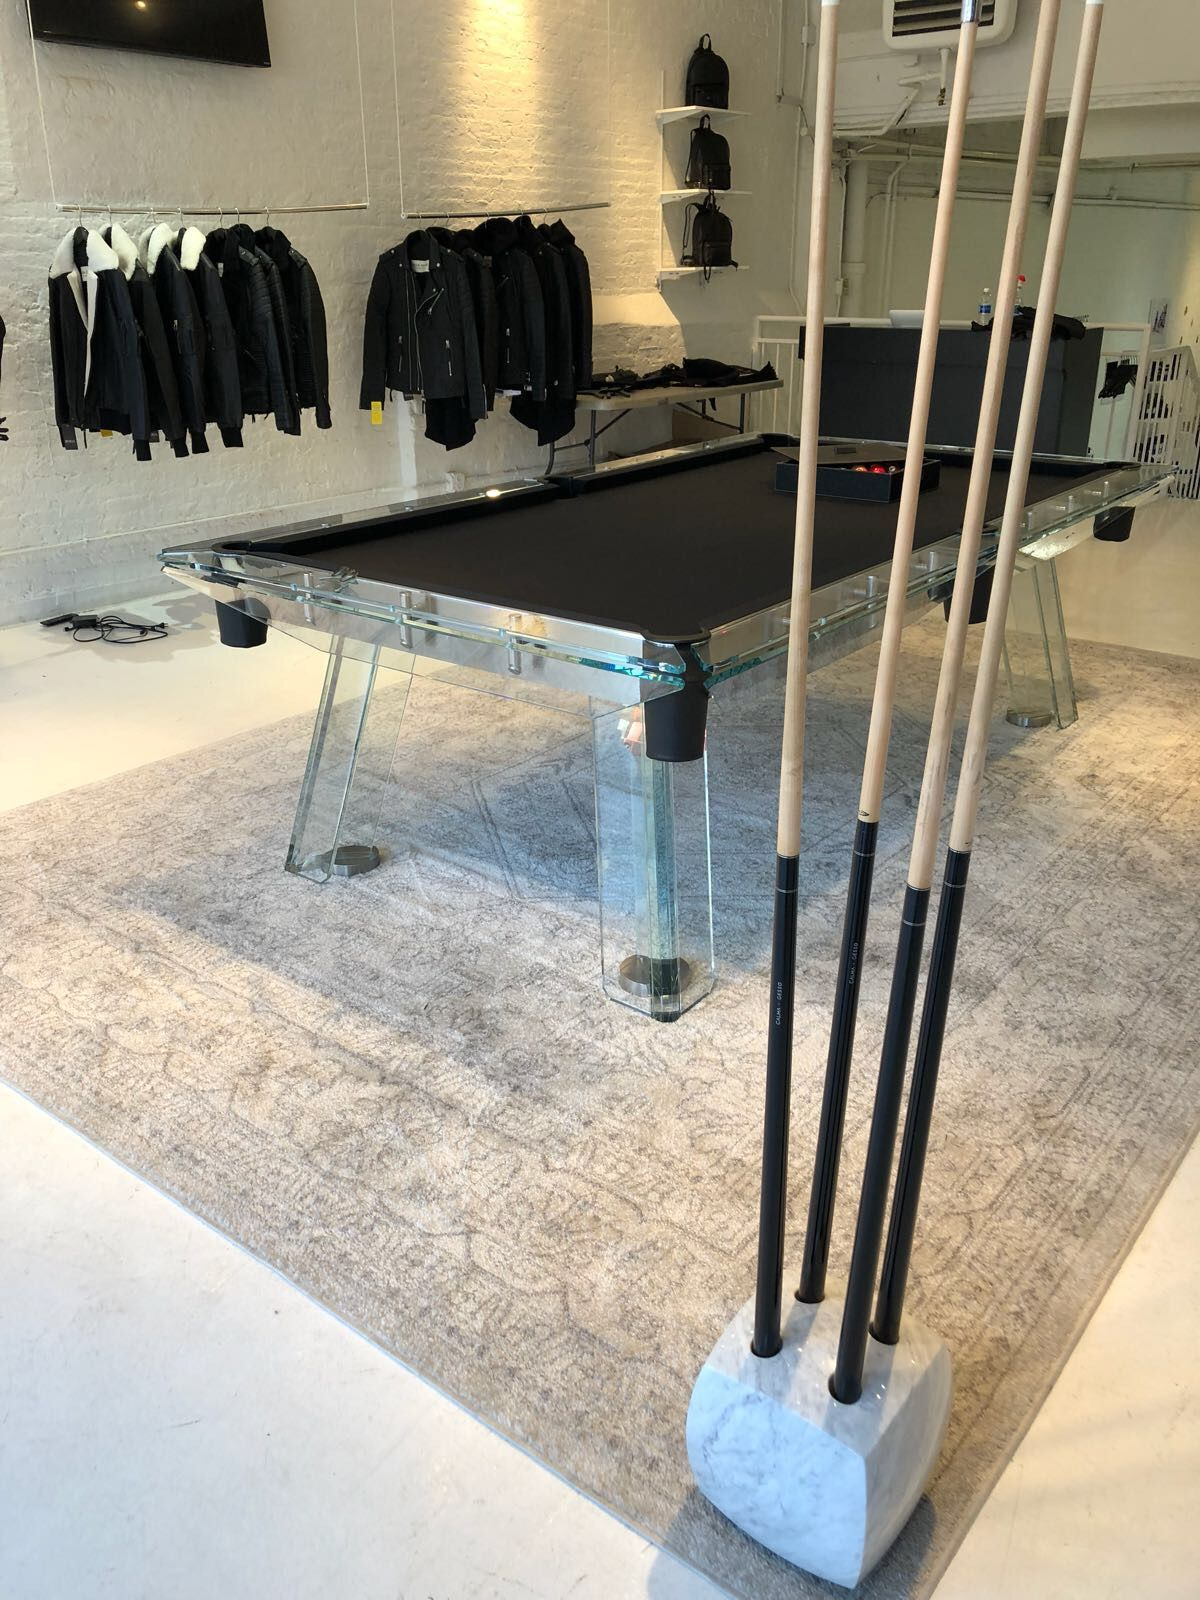 Filotto crystal billiards and Tocco marble cue rack by IMPATIA perfectly match the mood of this Fancy shop!   #fancy #billiards #interiors #inspiration #crystal #marble #luxury #furniture #gameRoom #basement #design #madeinItaly